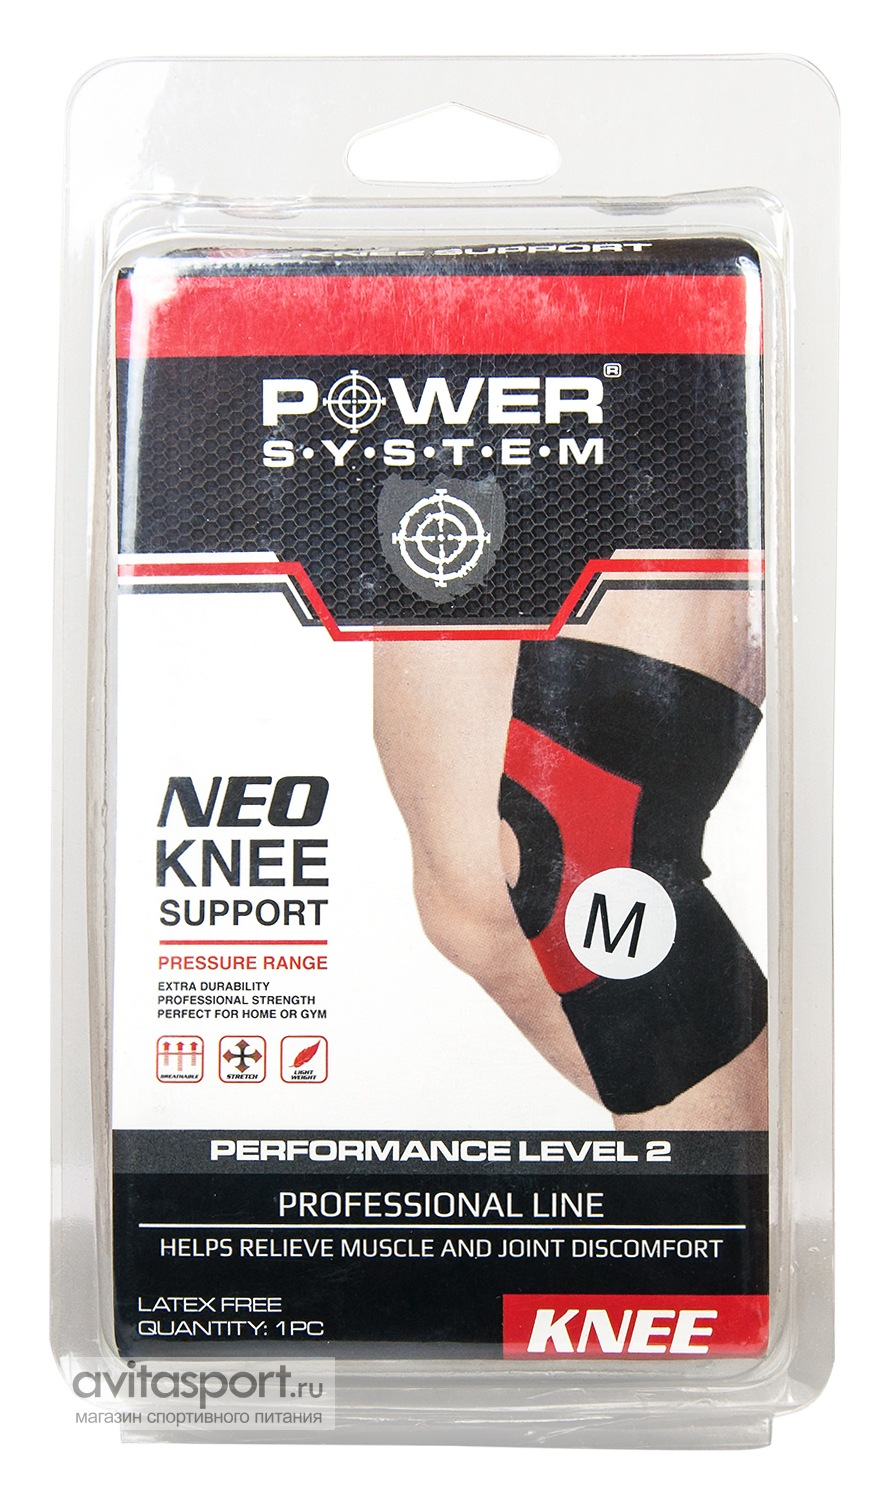 Power System Accessories Суппорт для колена Neo Knee Support PS-6012 1 шт